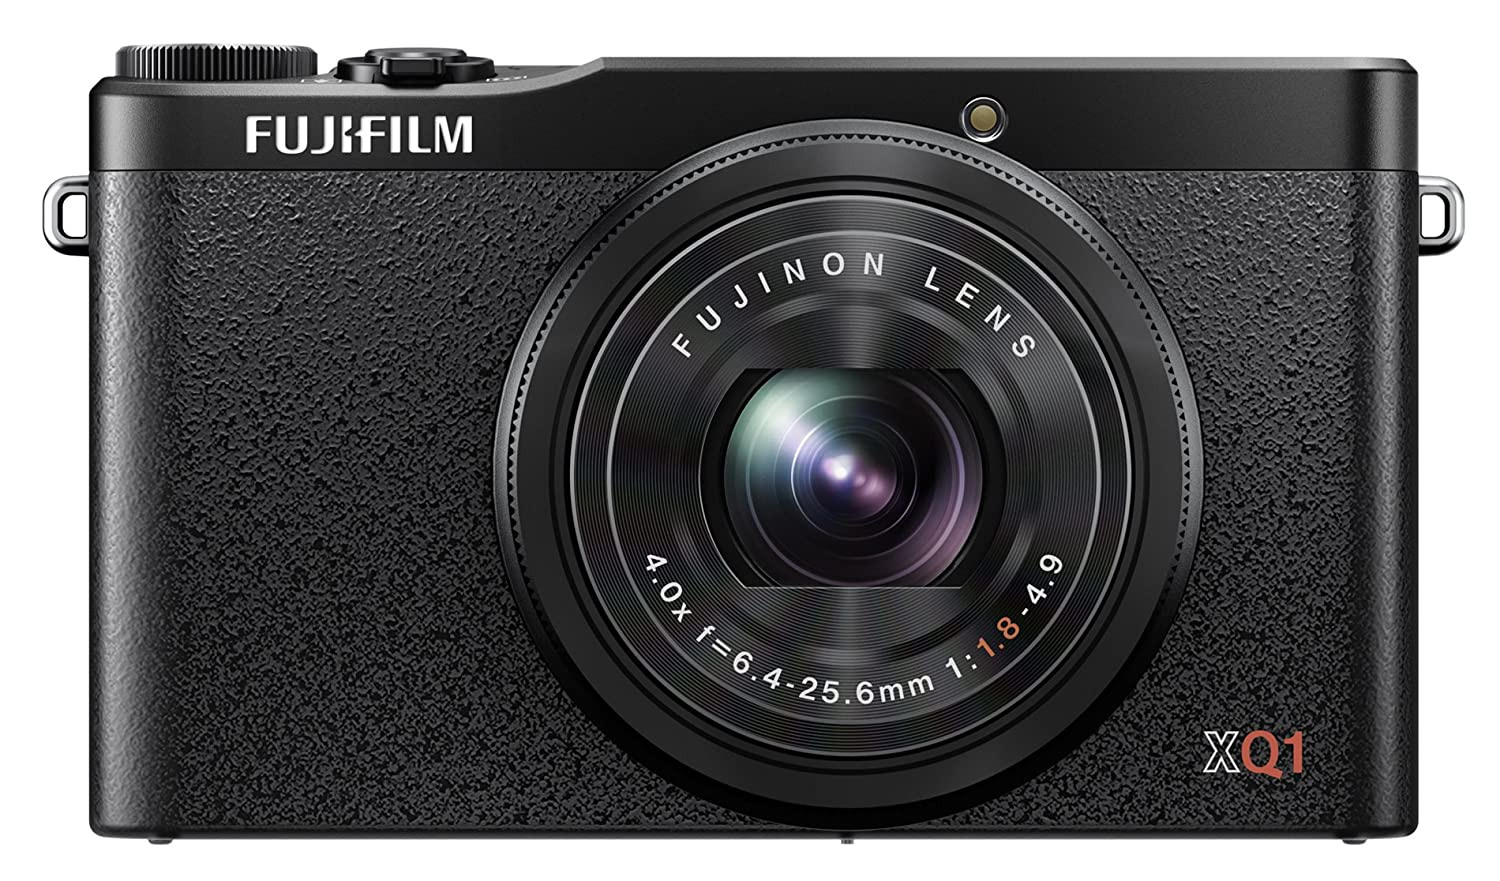 Amazon.com : Fujifilm XQ1 12MP Digital Camera with 3.0-Inch LCD (Black) :  Point And Shoot Digital Cameras : Camera & Photo